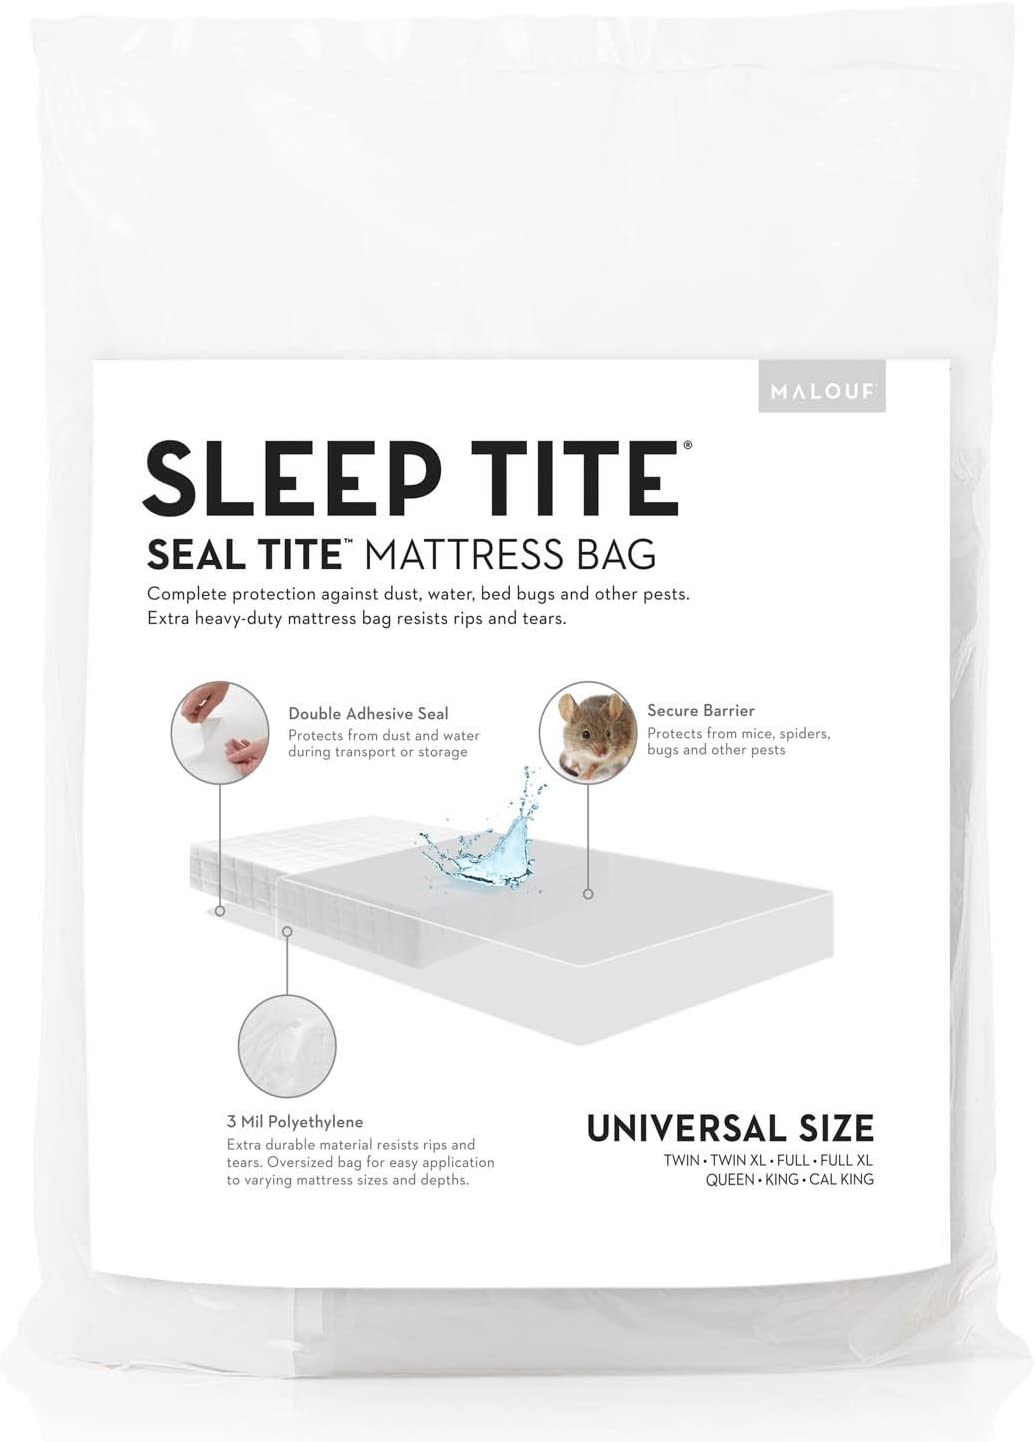 MALOUF Seal TITE Heavy Duty Sealable Bag-Protects Your Mattress While Moving or in Storage, Full/Queen